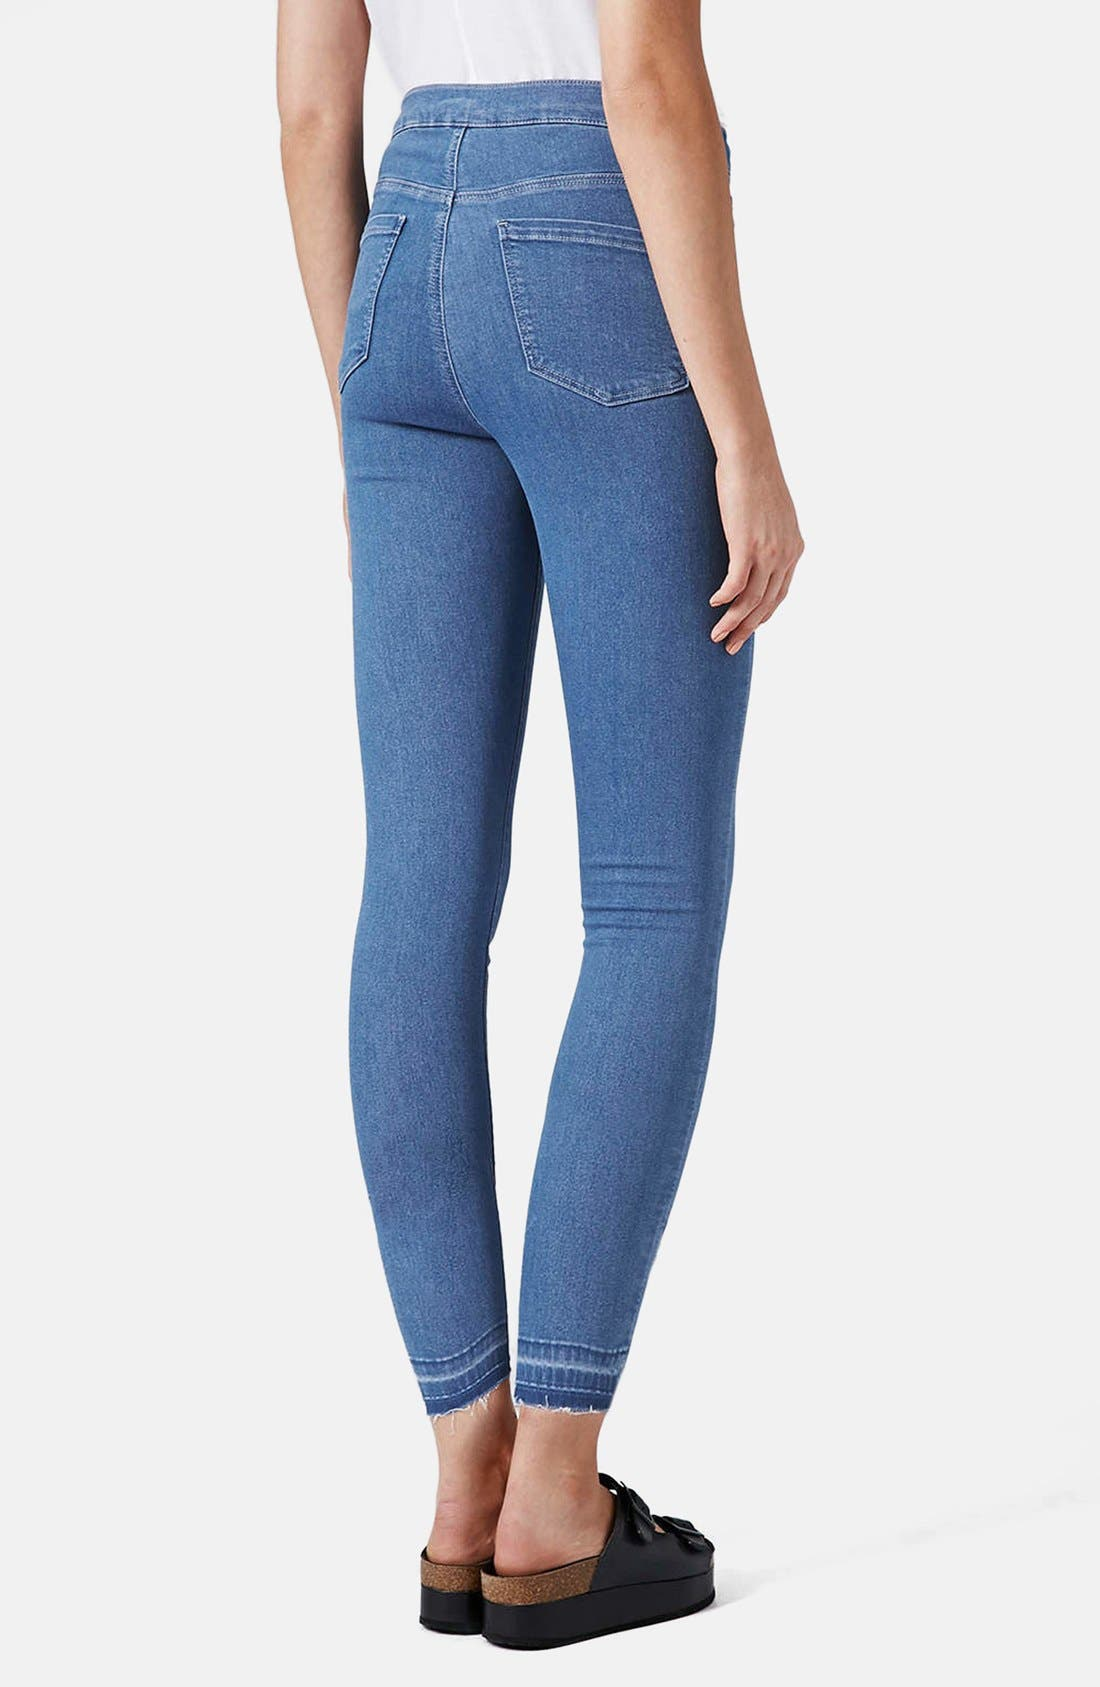 Alternate Image 2  - Topshop Moto 'Joni' High Rise Crop Skinny Jeans (Light)